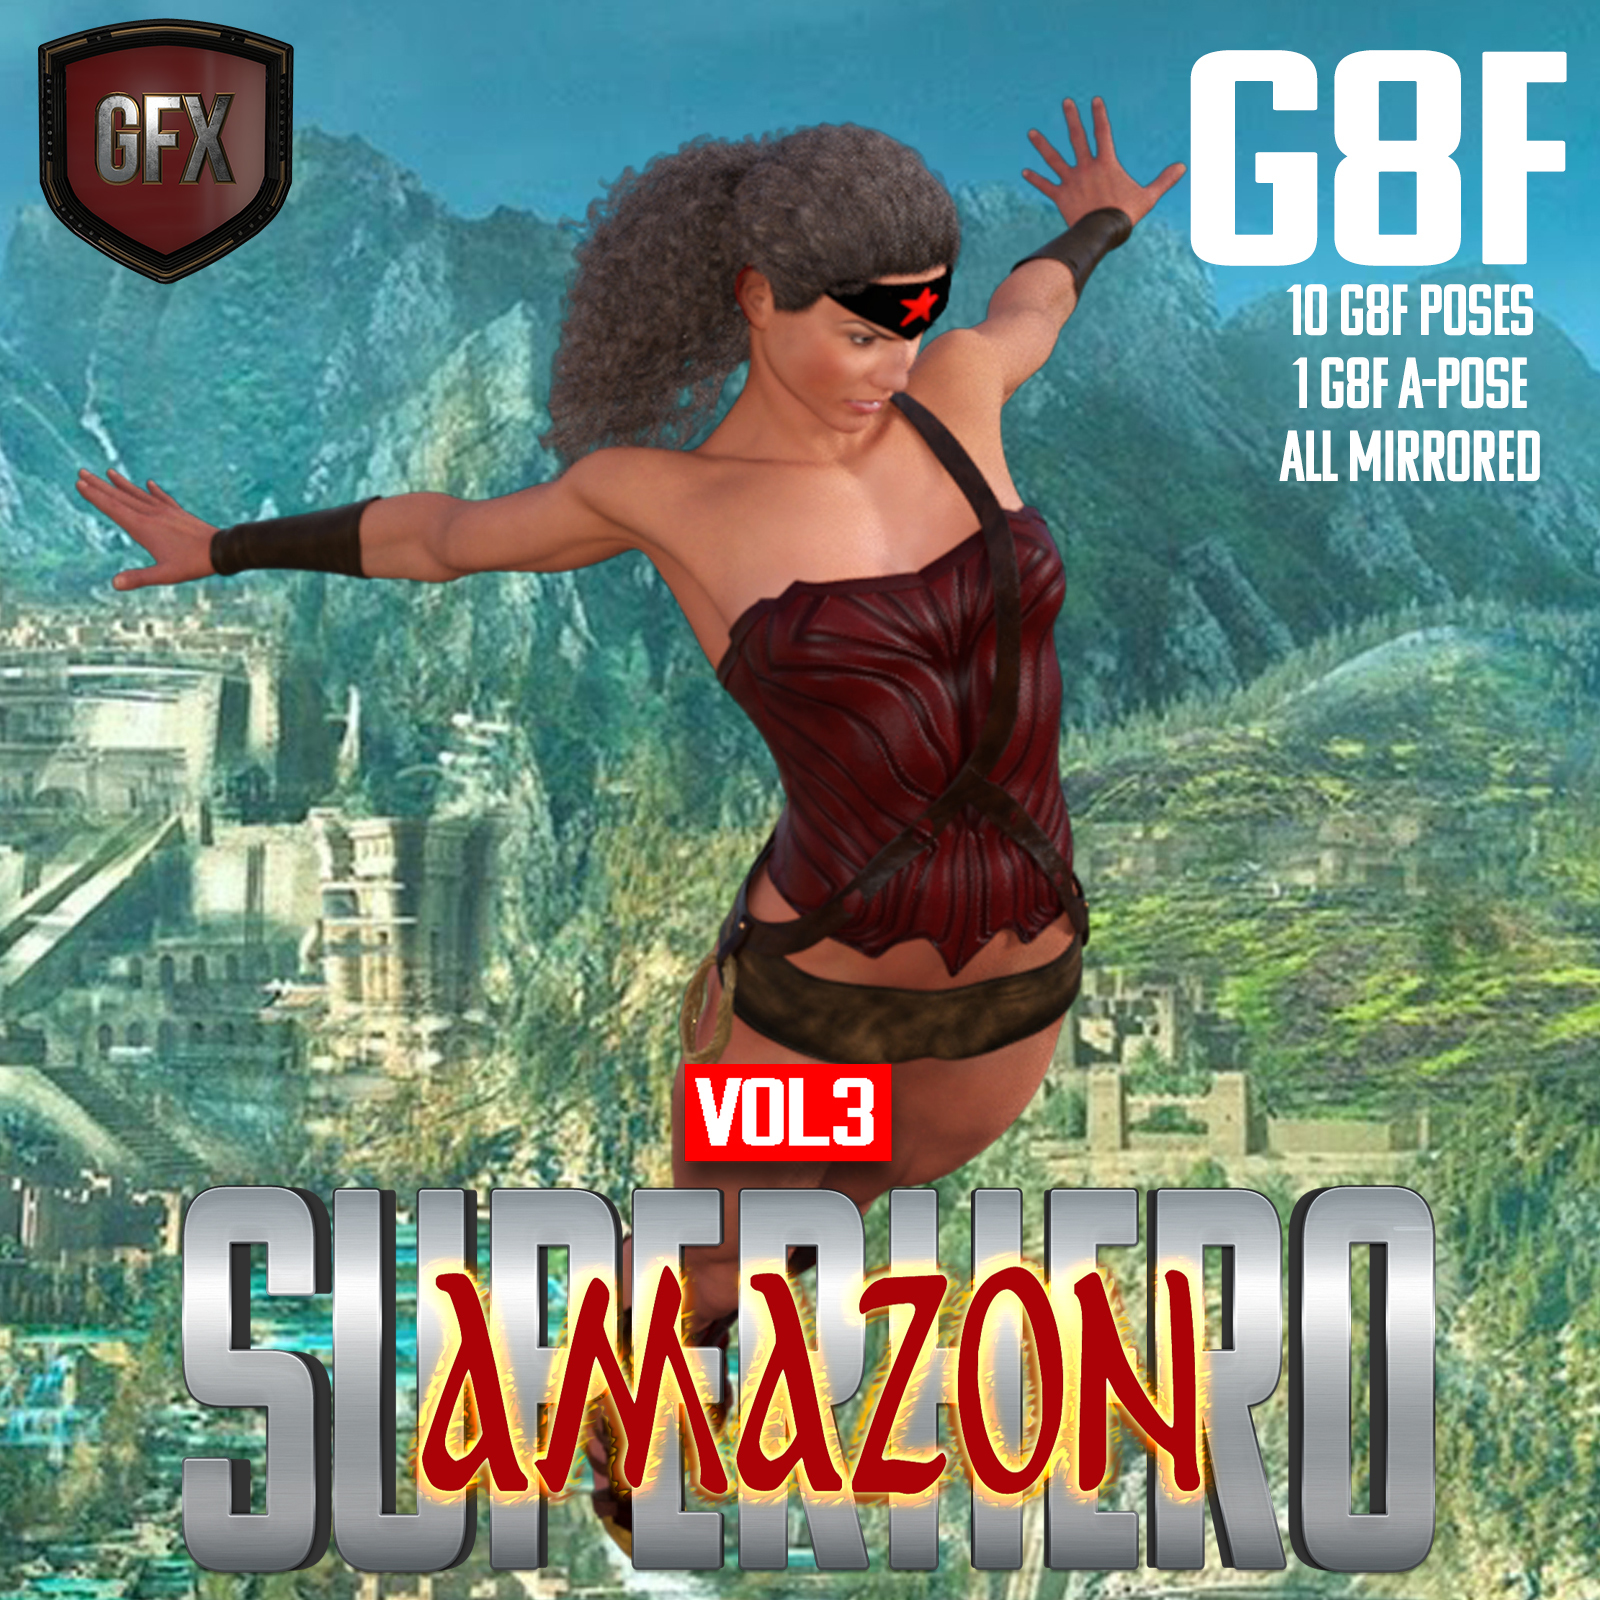 SuperHero Amazon for G8F Volume 3 by GriffinFX